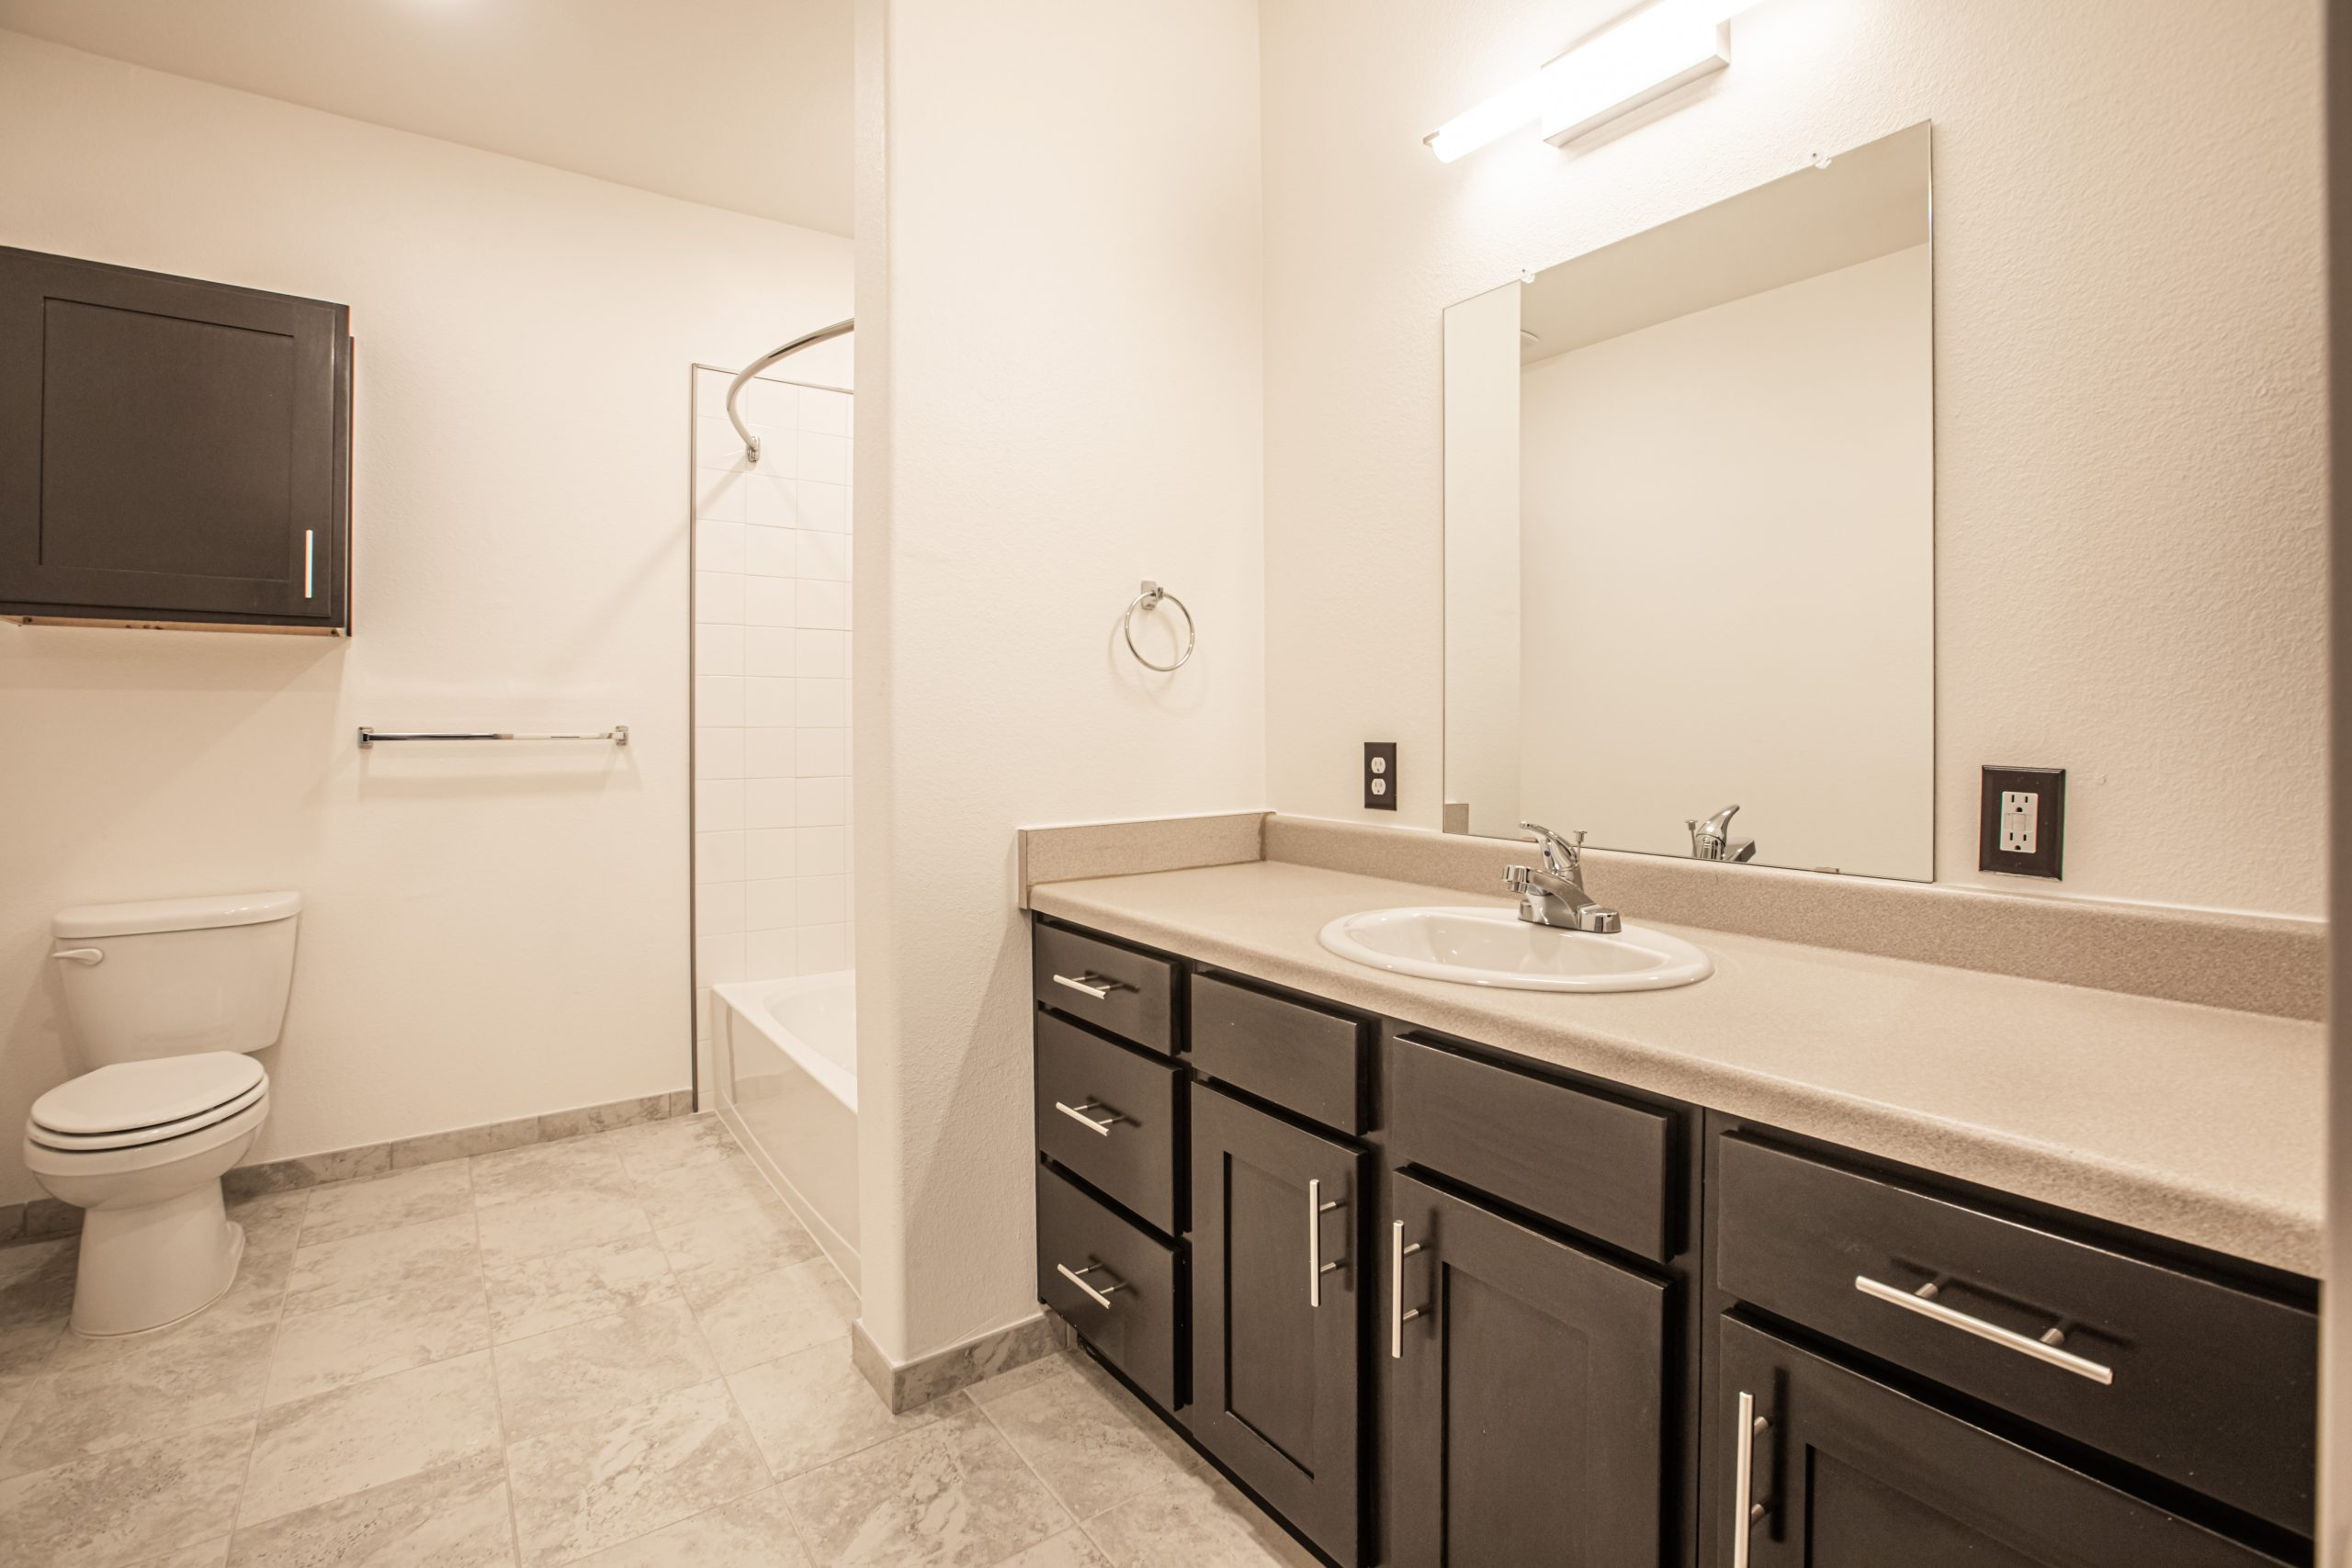 Apartment bathroom with sink, counter, toilet and shower